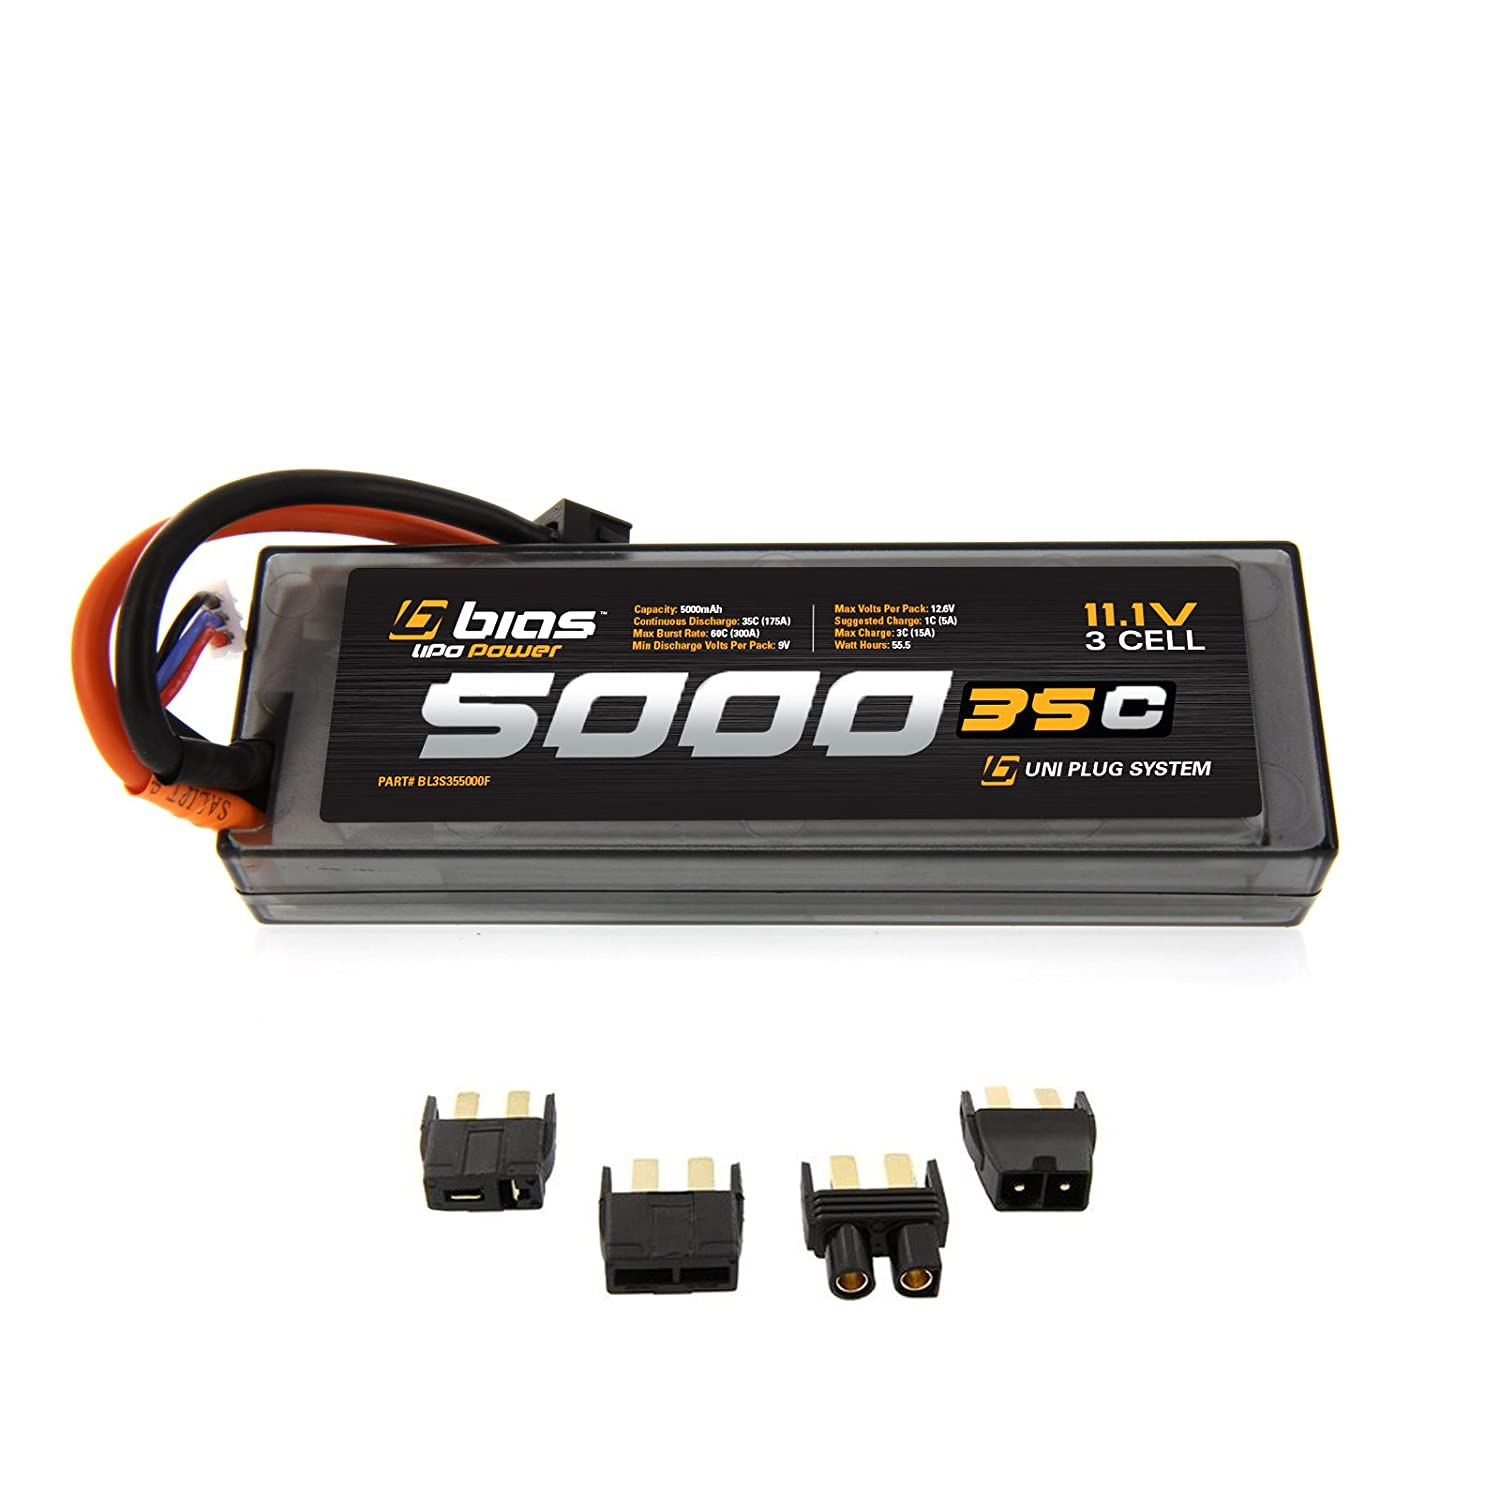 Amazon Bias 35C 3S 5000mAh 11 1V LiPo Hard Case Battery UNI Plug EC3 Deans Traxxas Tamiya for RC Car Truck Buggy Boat Heli and Drone Toys &